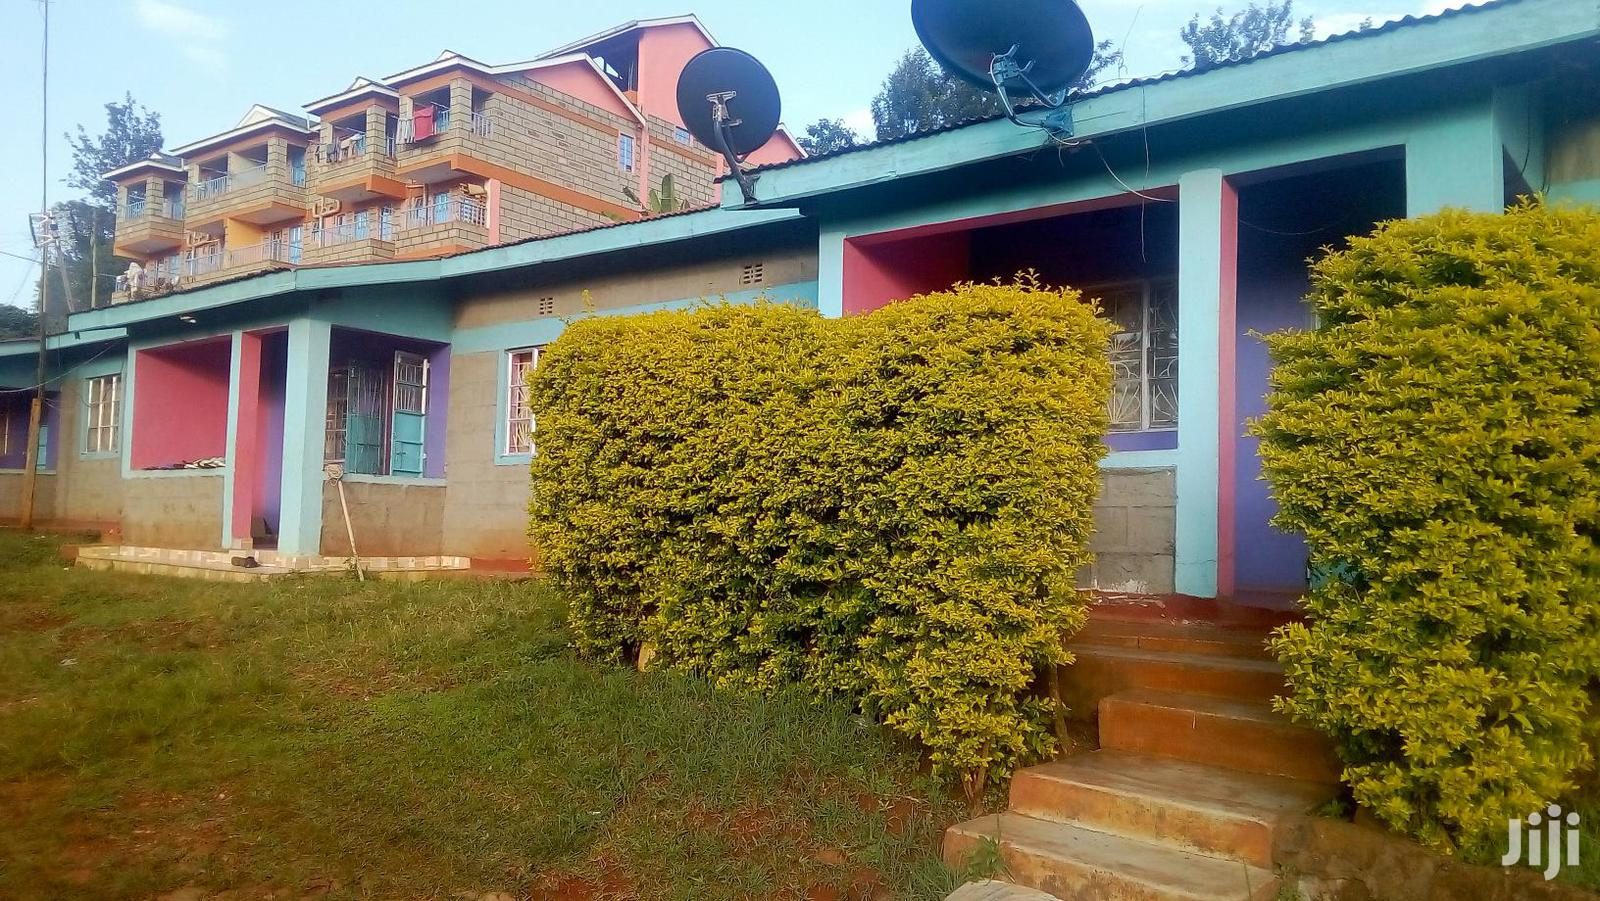 3bdrm Apartment in Central Ward for Sale